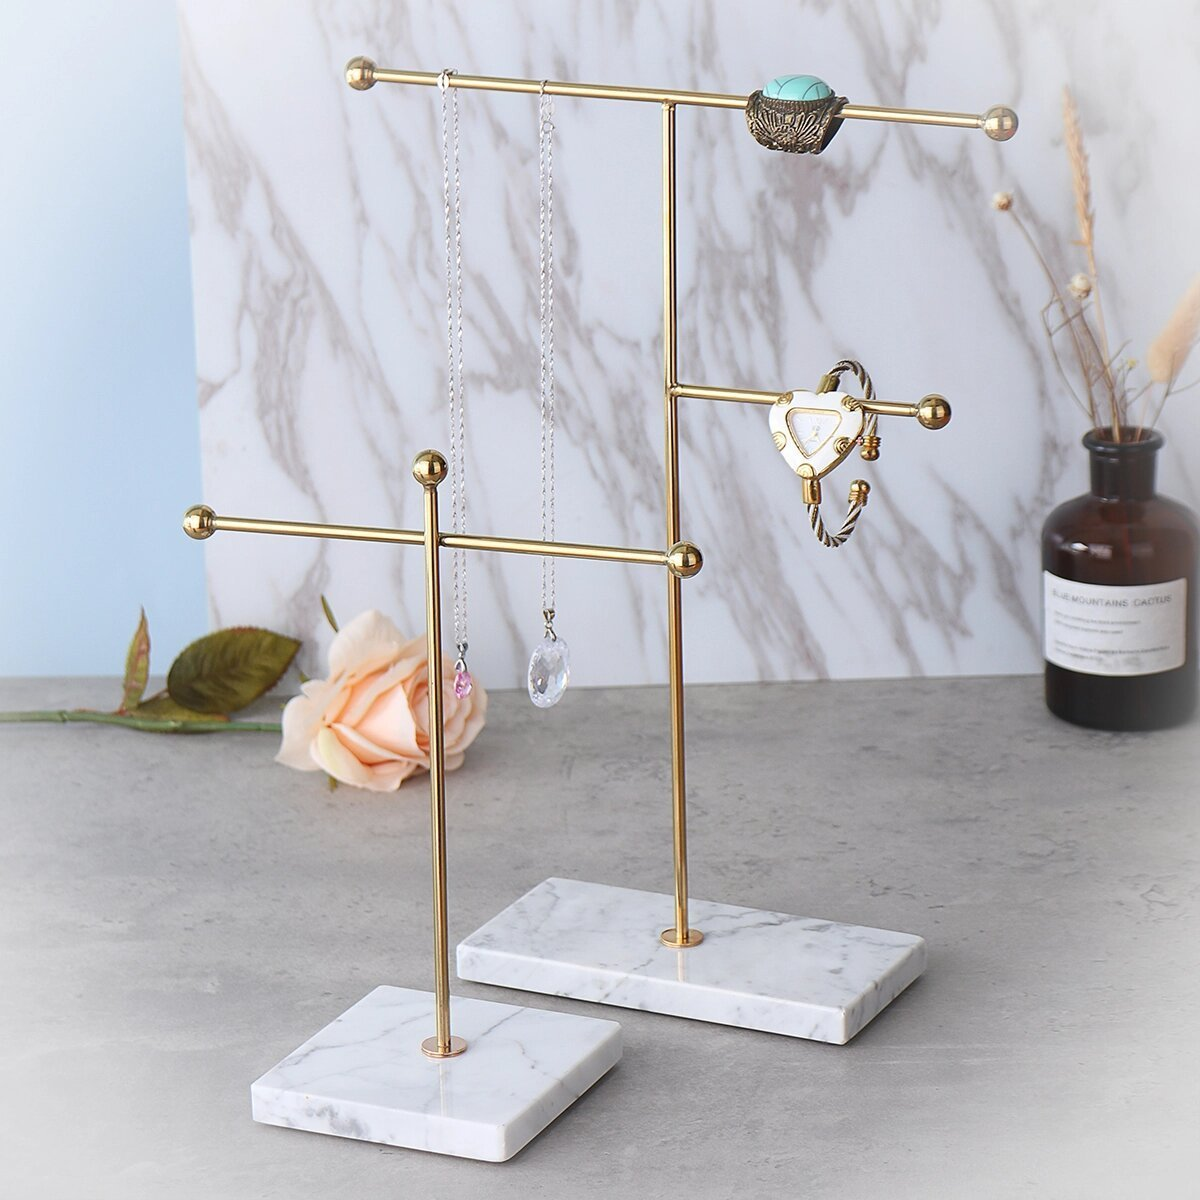 Jewelry Necklace Holder Organizer Elegant Marble Stand No Assembly Super Buzz Store